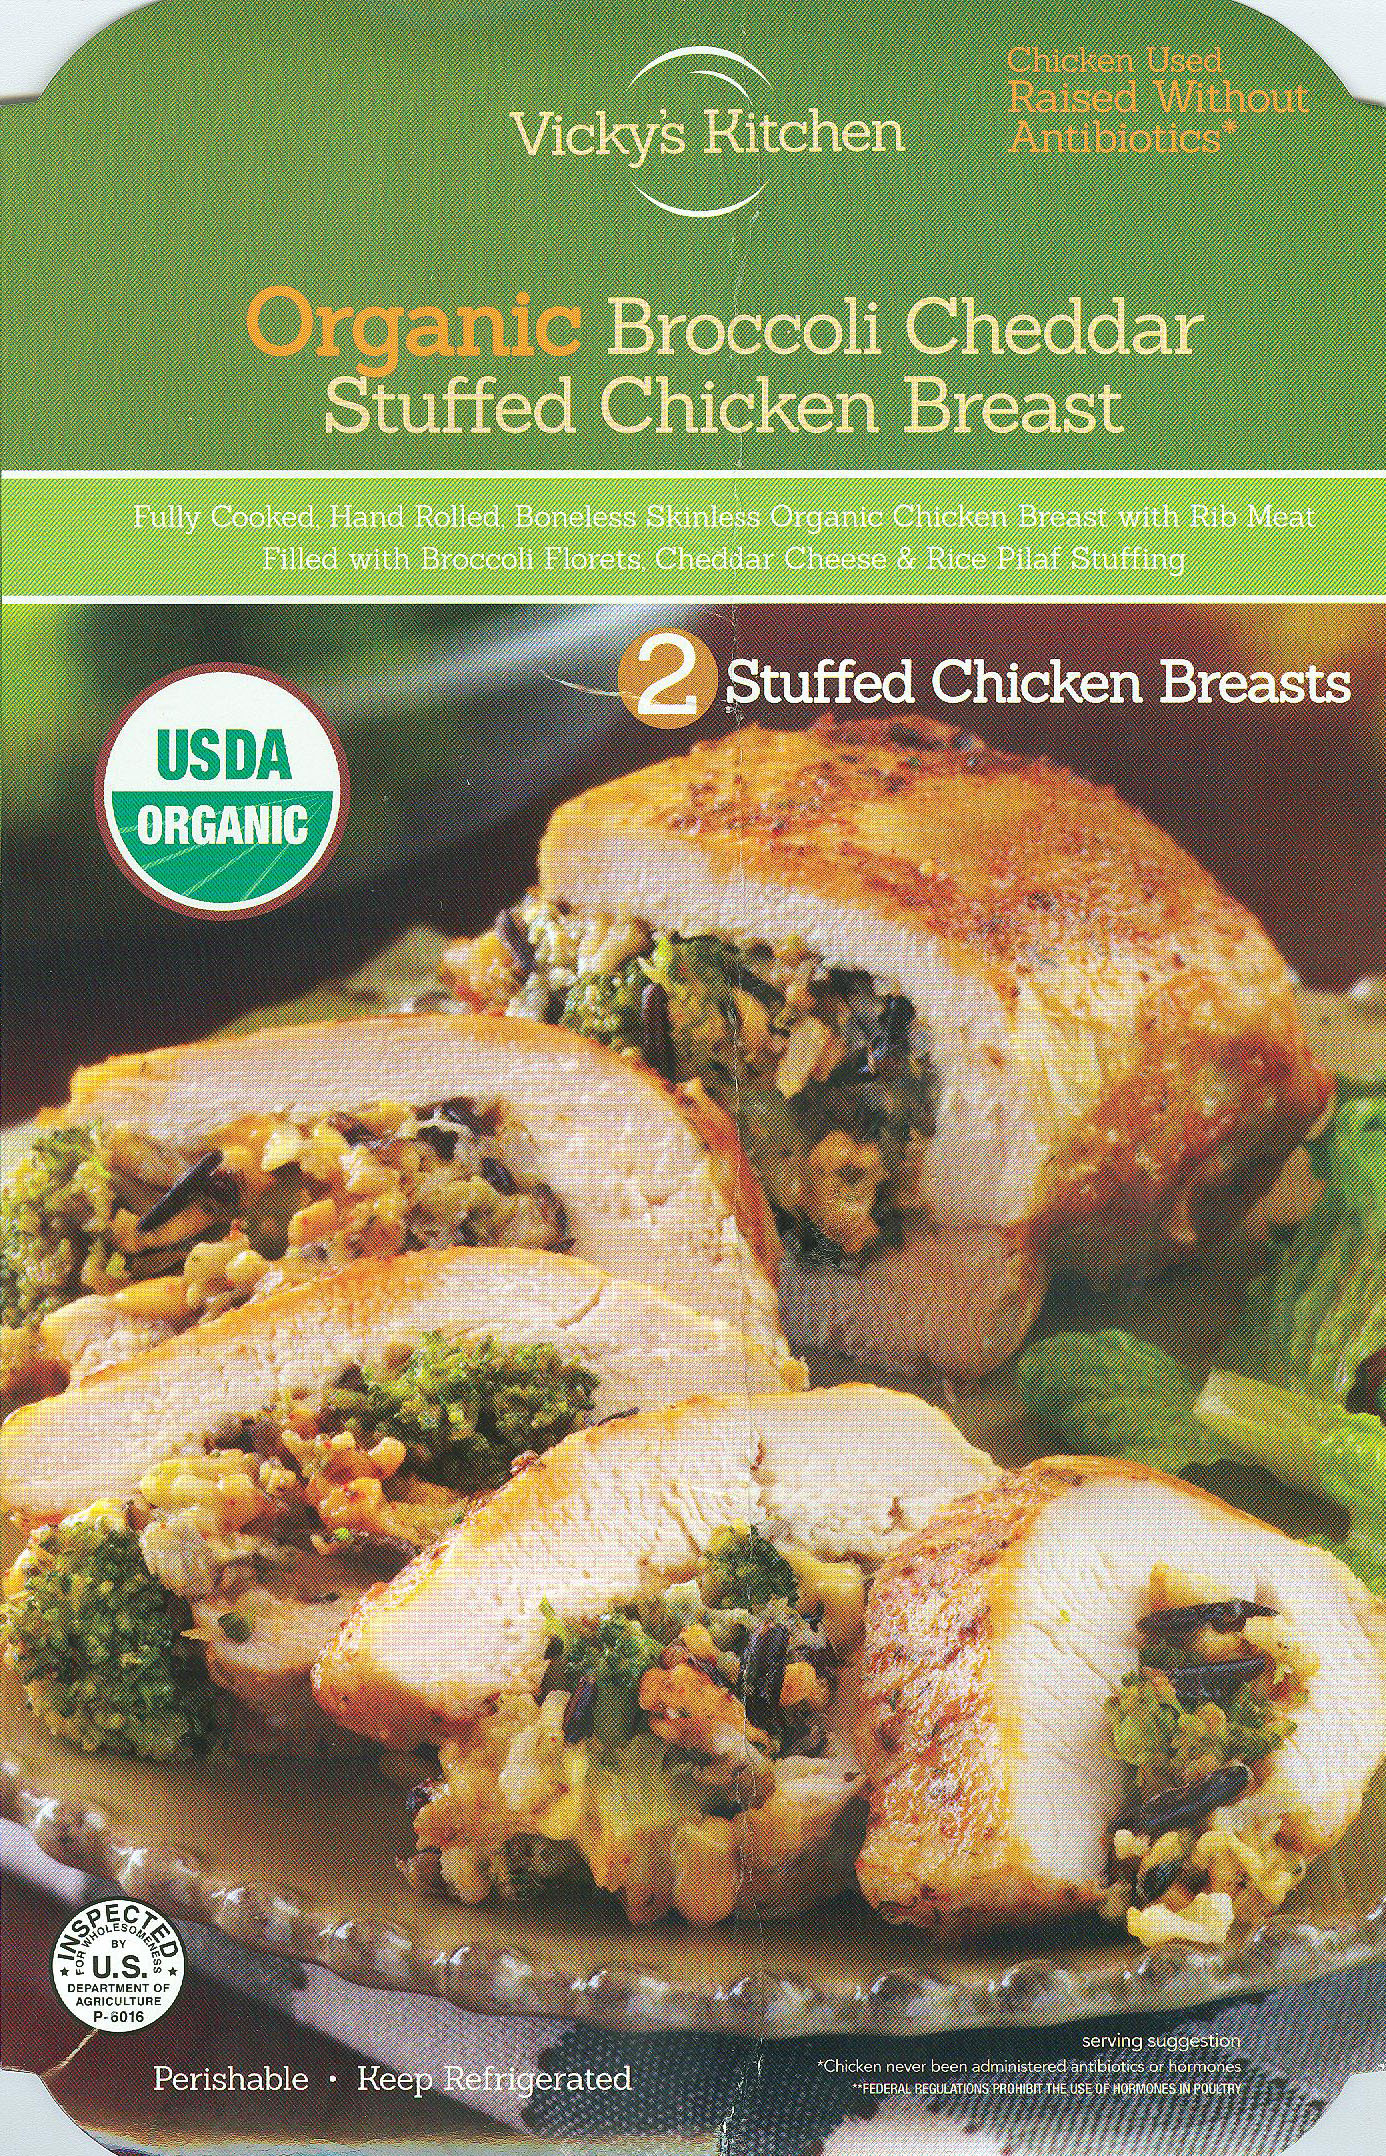 Vicky's Kitchen Broccoli Cheddar Stuffed Chicken Breast